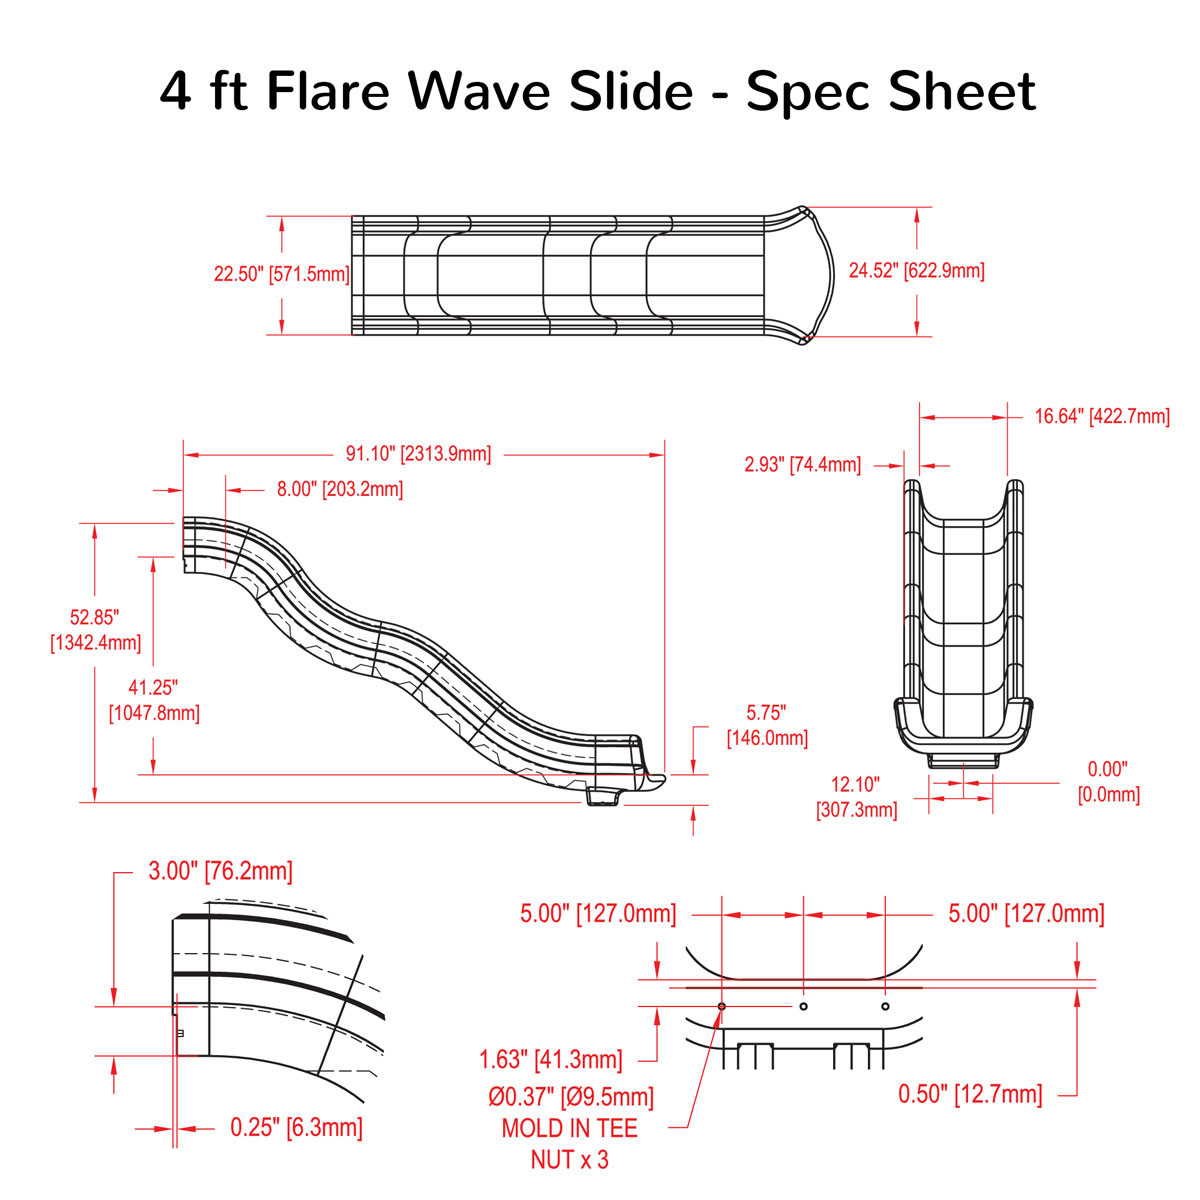 4 ft Flare Wave Slide Spec Sheet